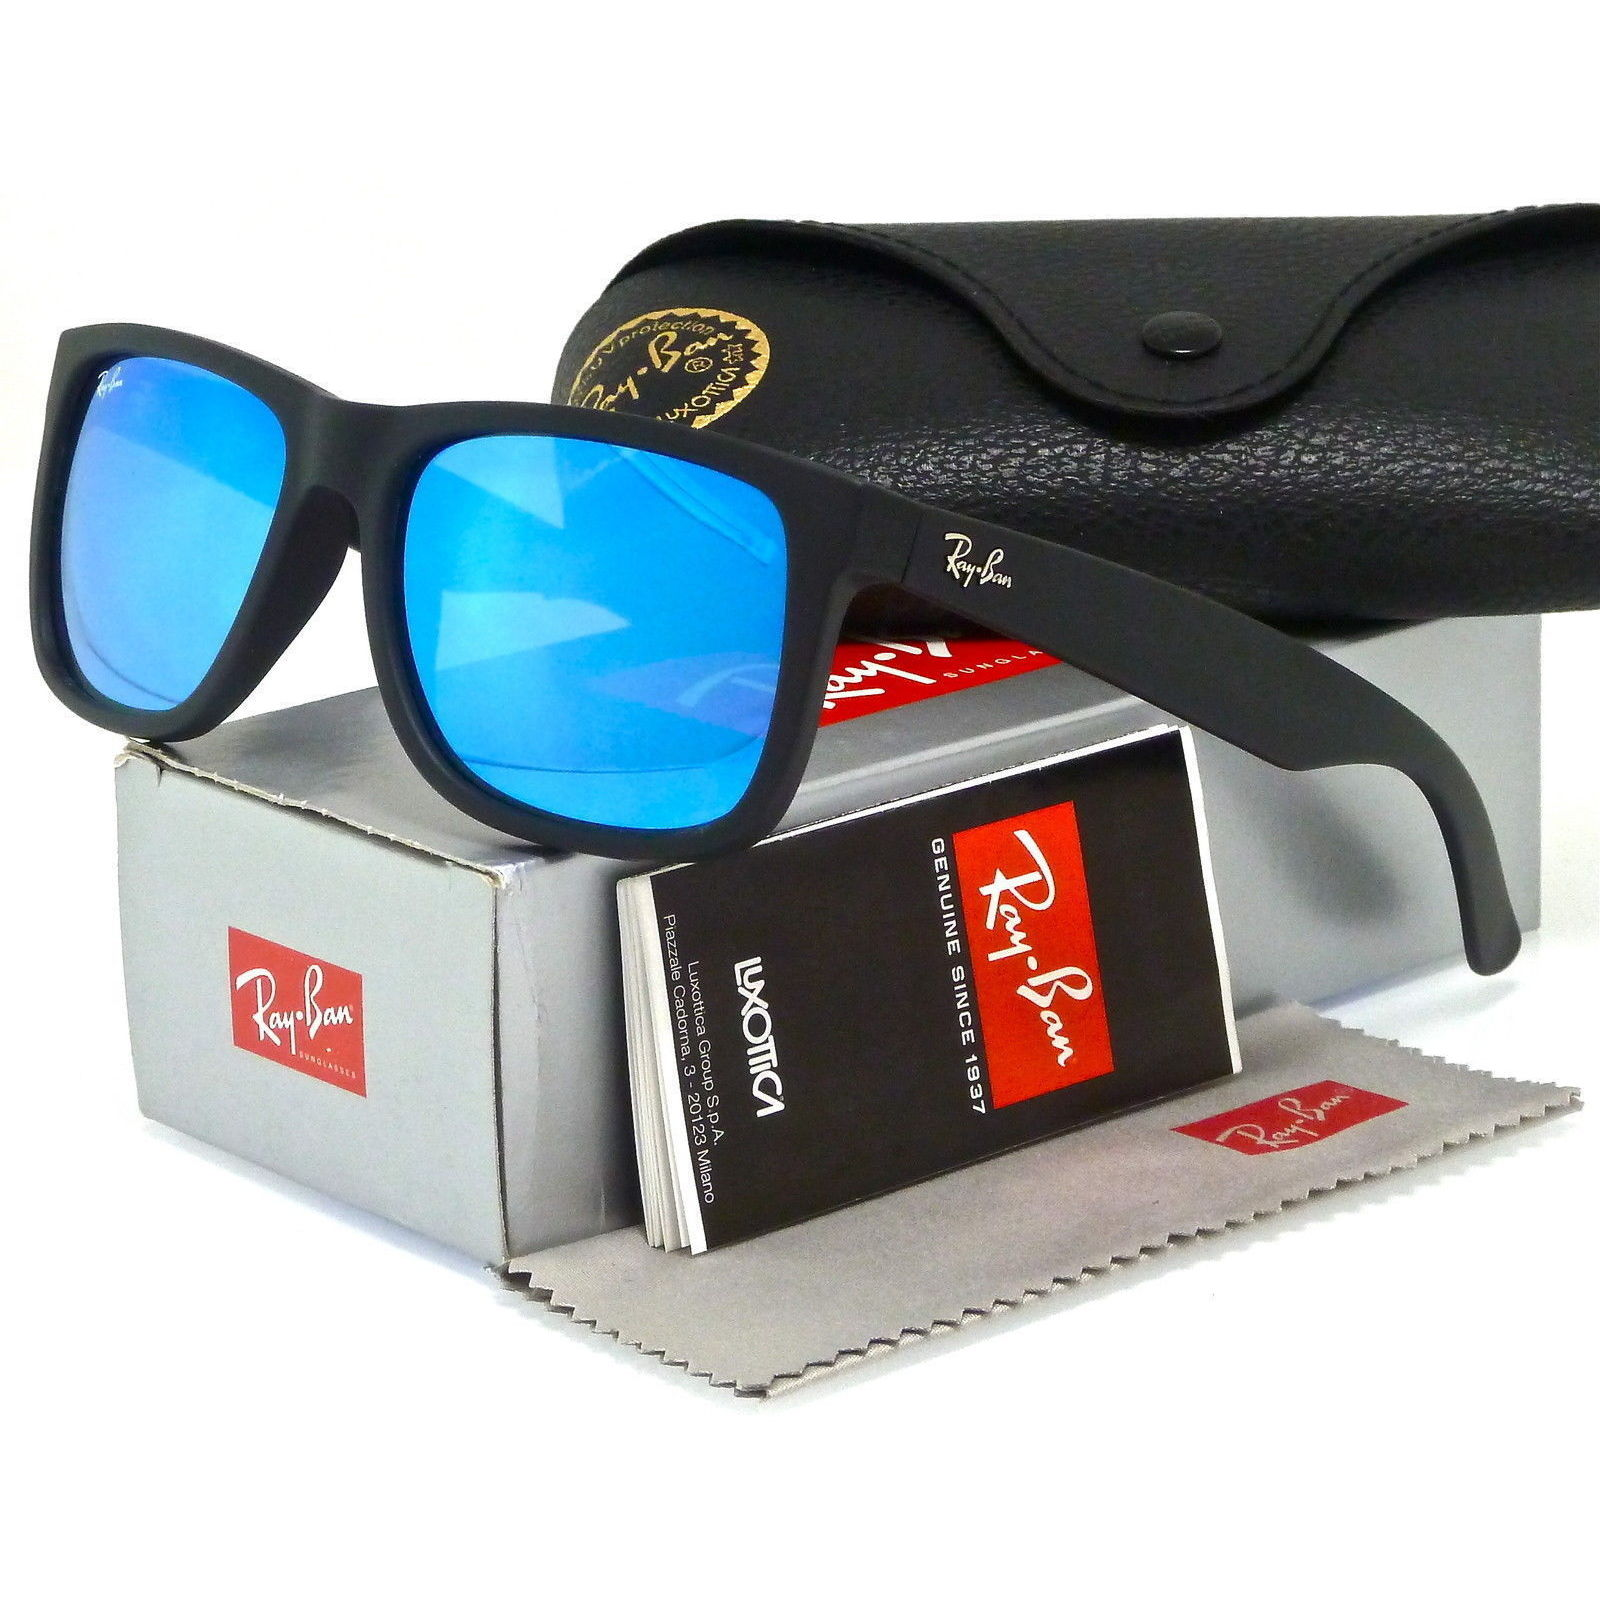 38c7de27840 Shop Ray-Ban Justin Color Mix RB 4165 Unisex Black Frame Blue Mirror Lens  Sunglasses - Free Shipping Today - Overstock - 10809682